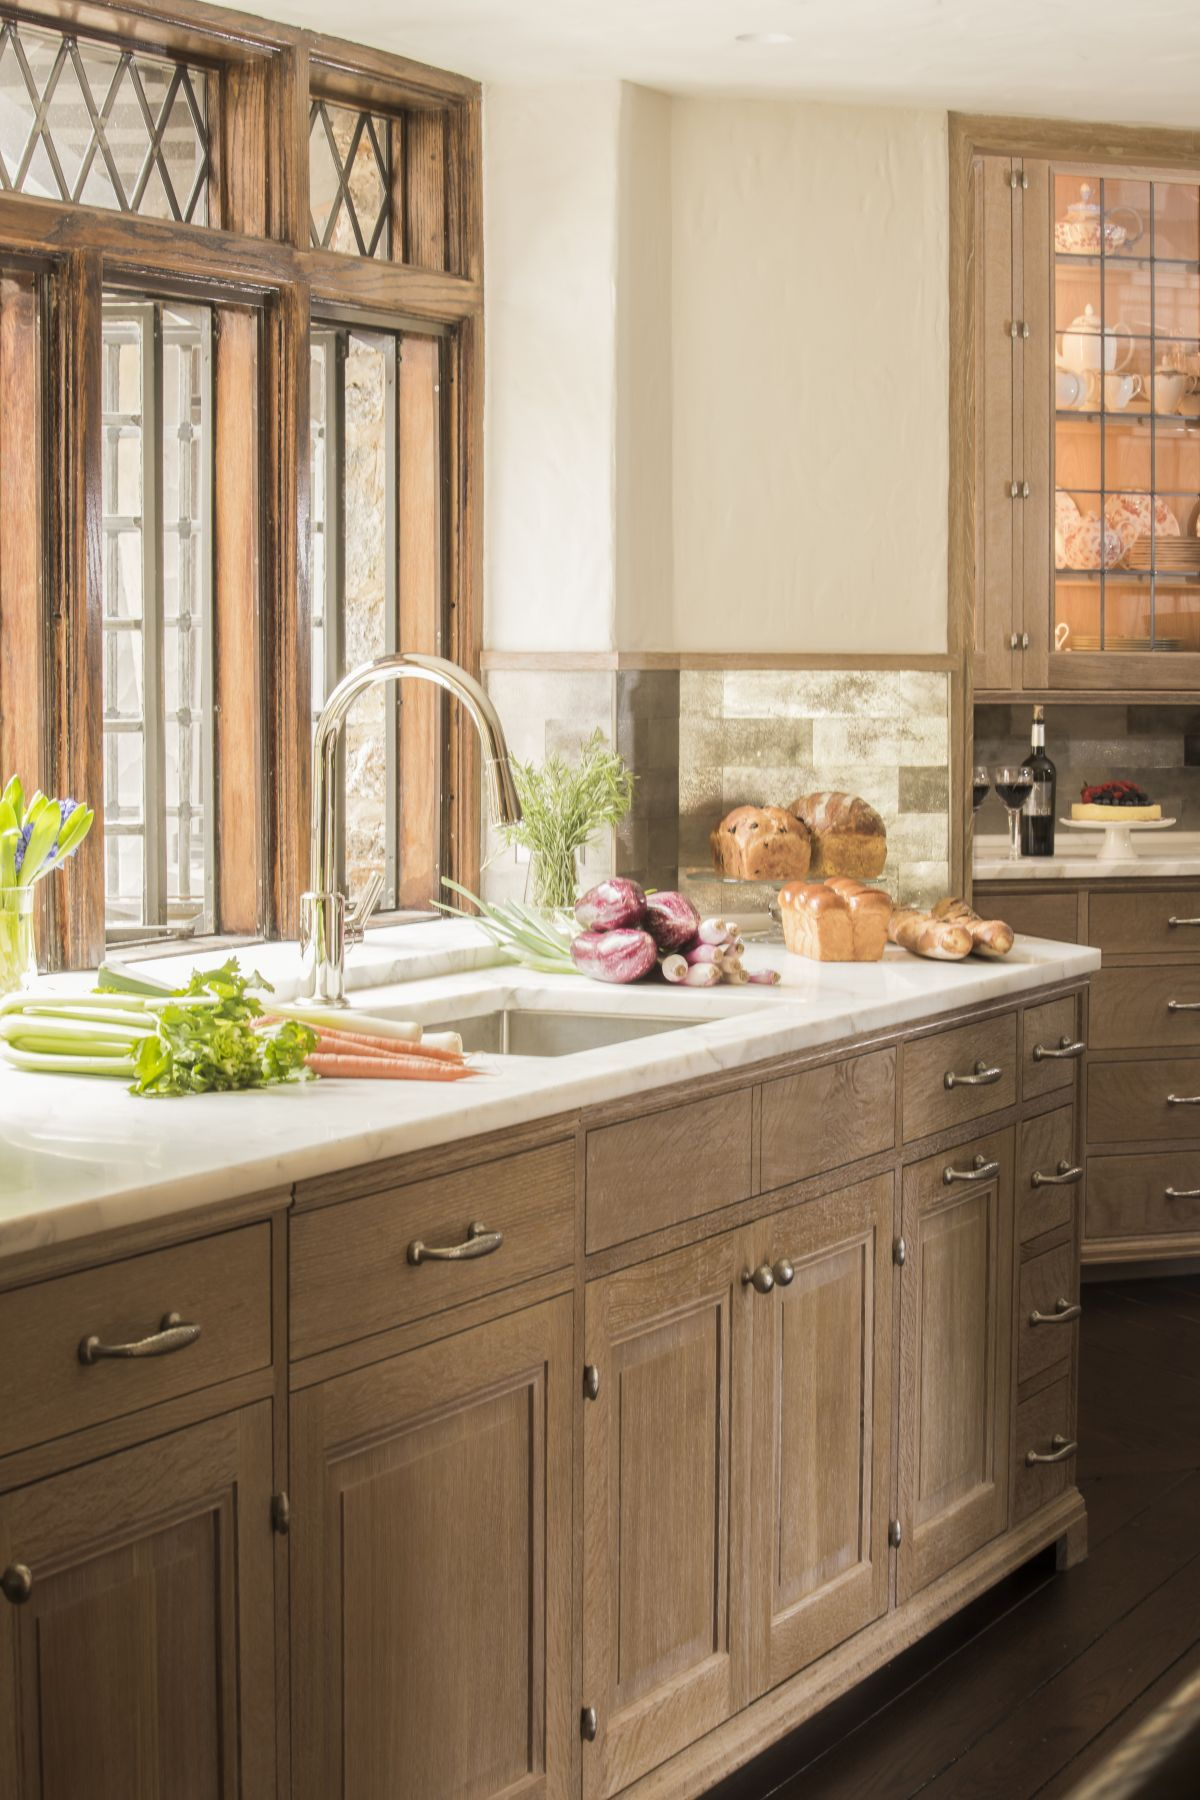 Modern Kitchen Design With Price Cost Of Kitchen Cabinets Kitchen Interior Layout Kitchen Design